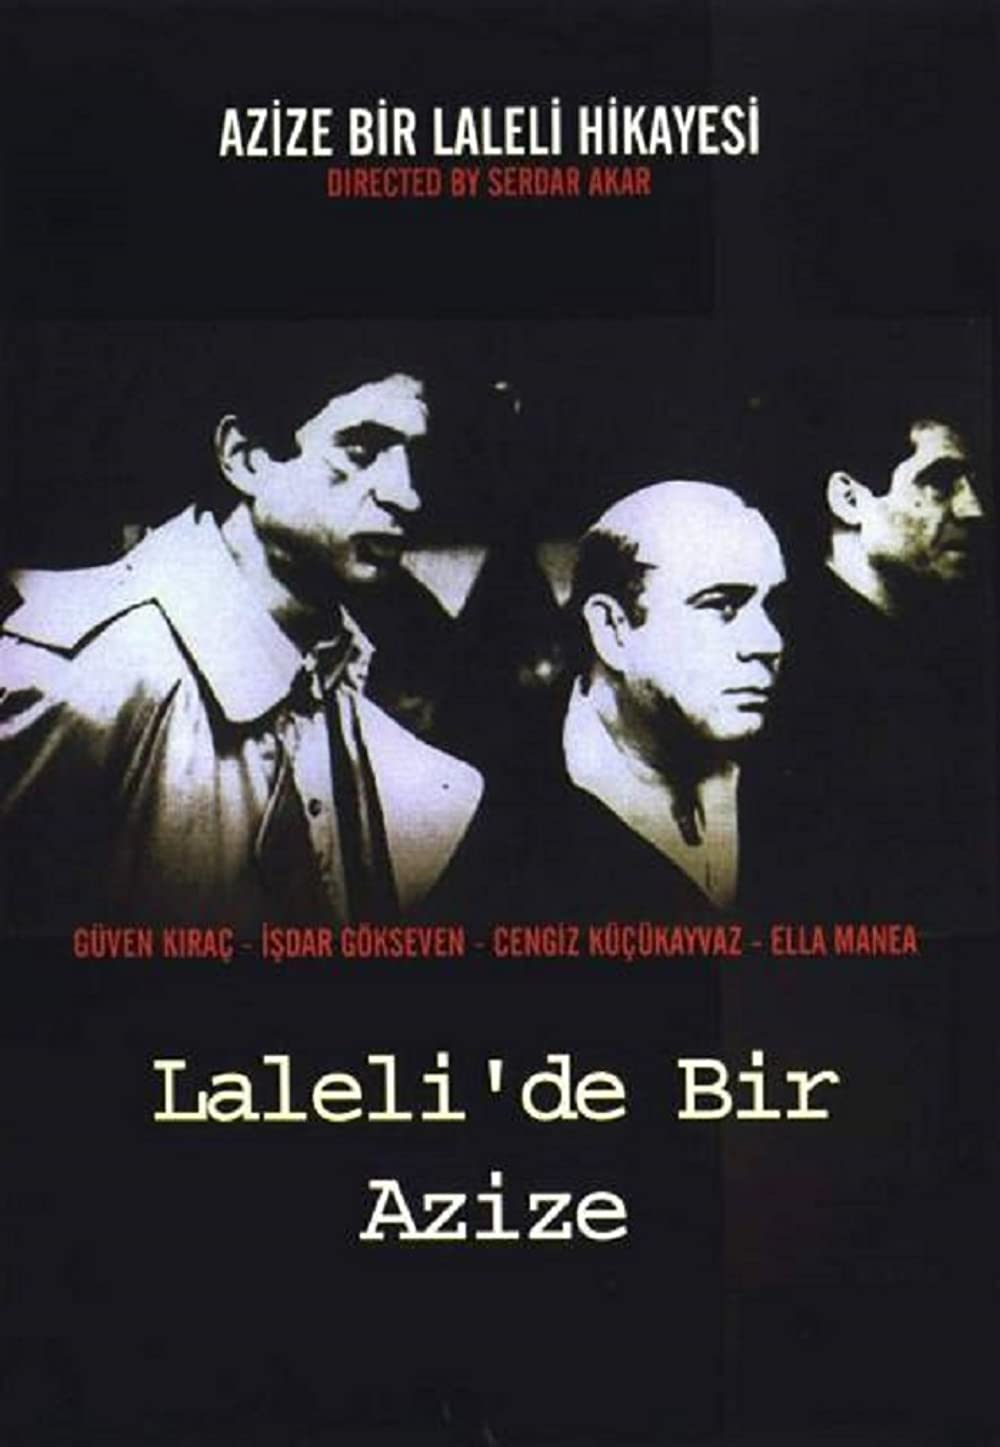 Awesome Lalelide Bir Azize Filmi Izle wallpapers to download for free greenvirals